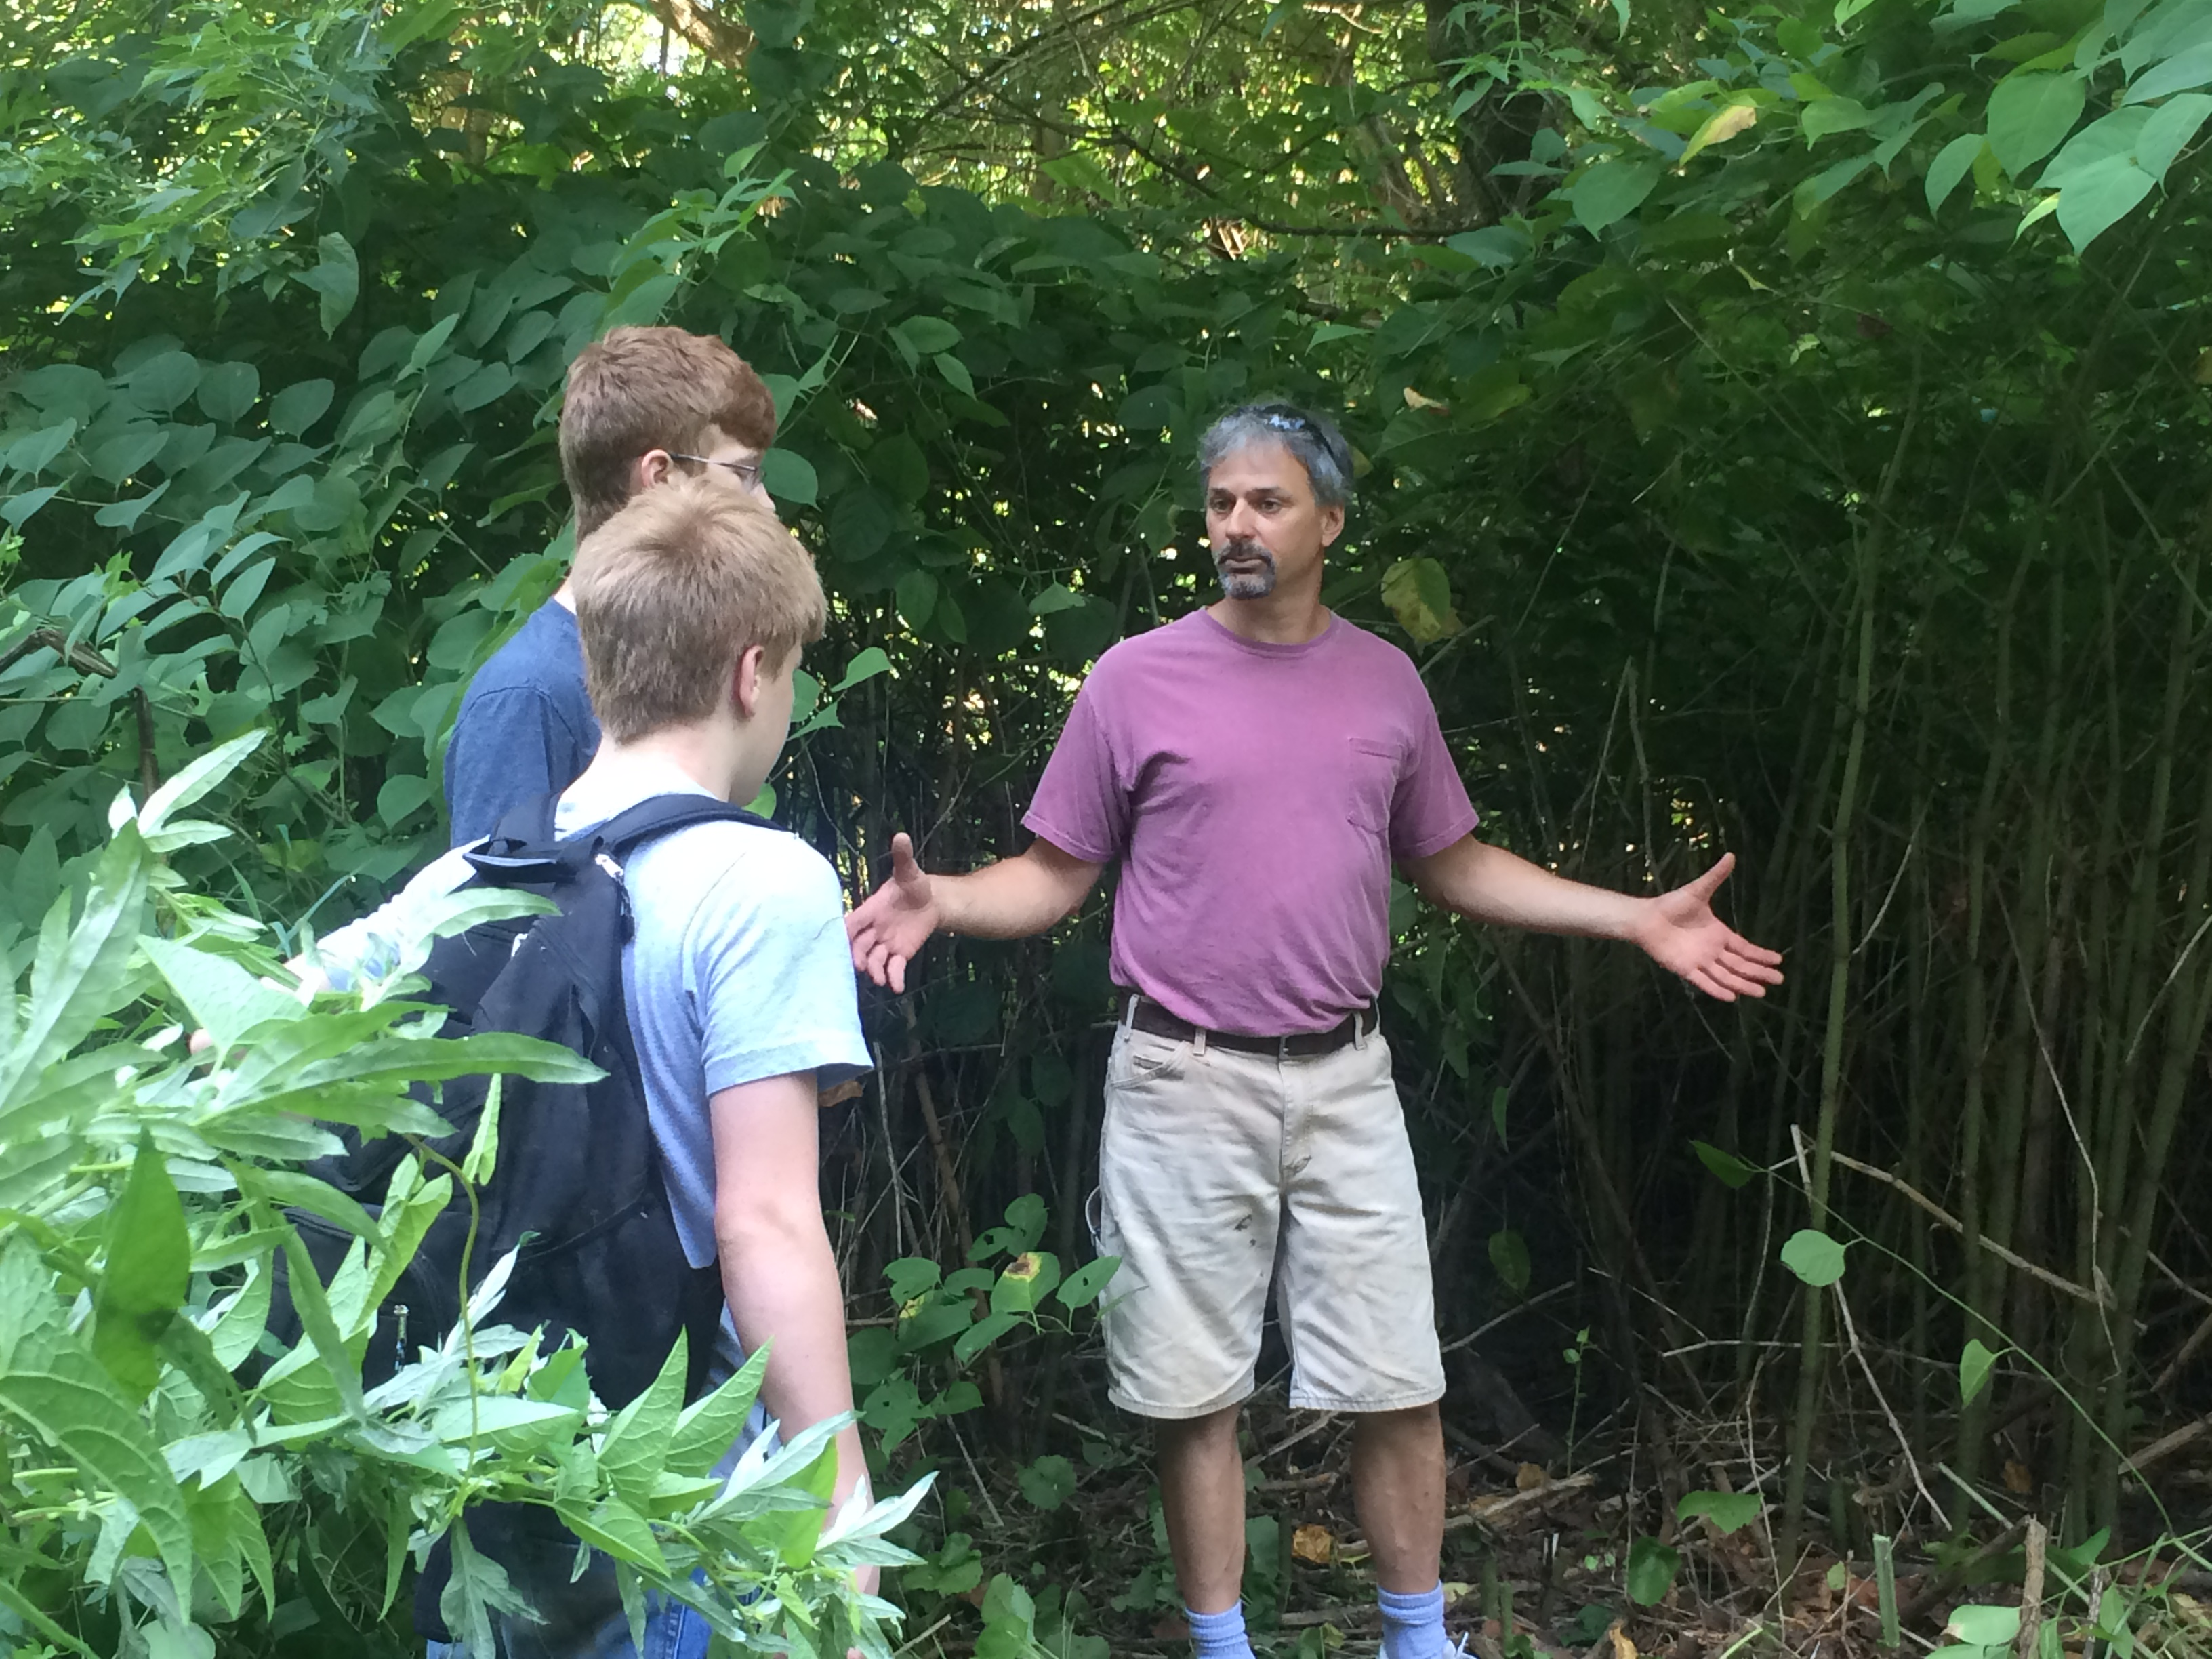 7-21-2016_Joe explains about Japanese Knotweed_8